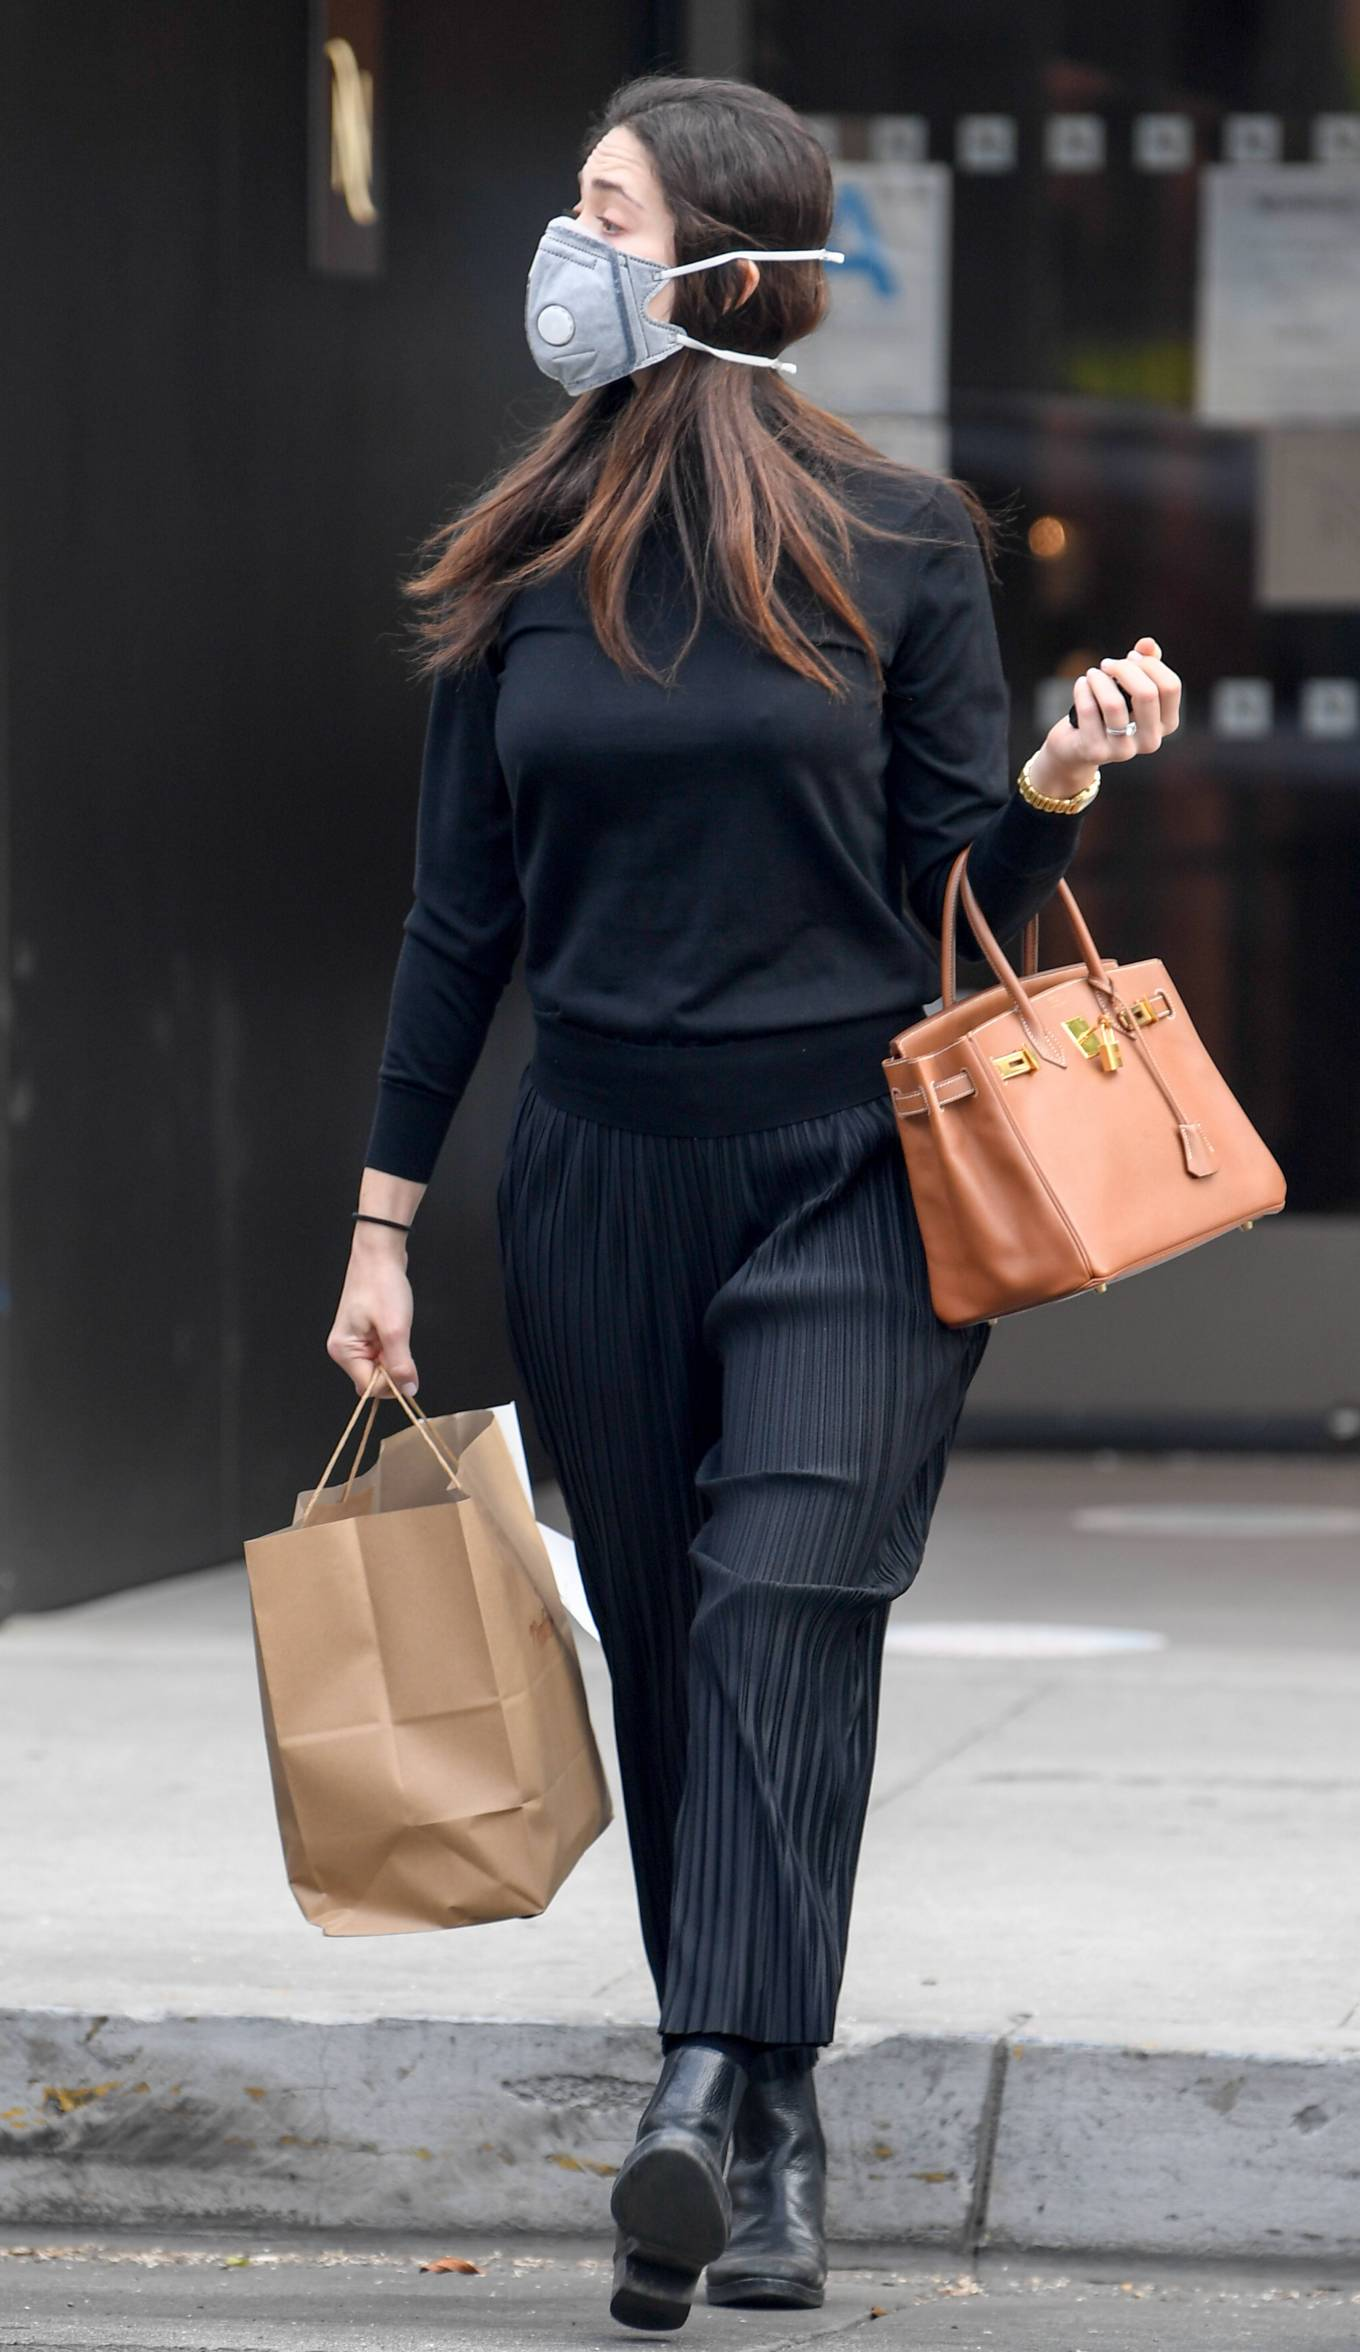 Emmy Rossum 2020 : Emmy Rossum – Spotted outside Nate n Als in Beverly Hills -01